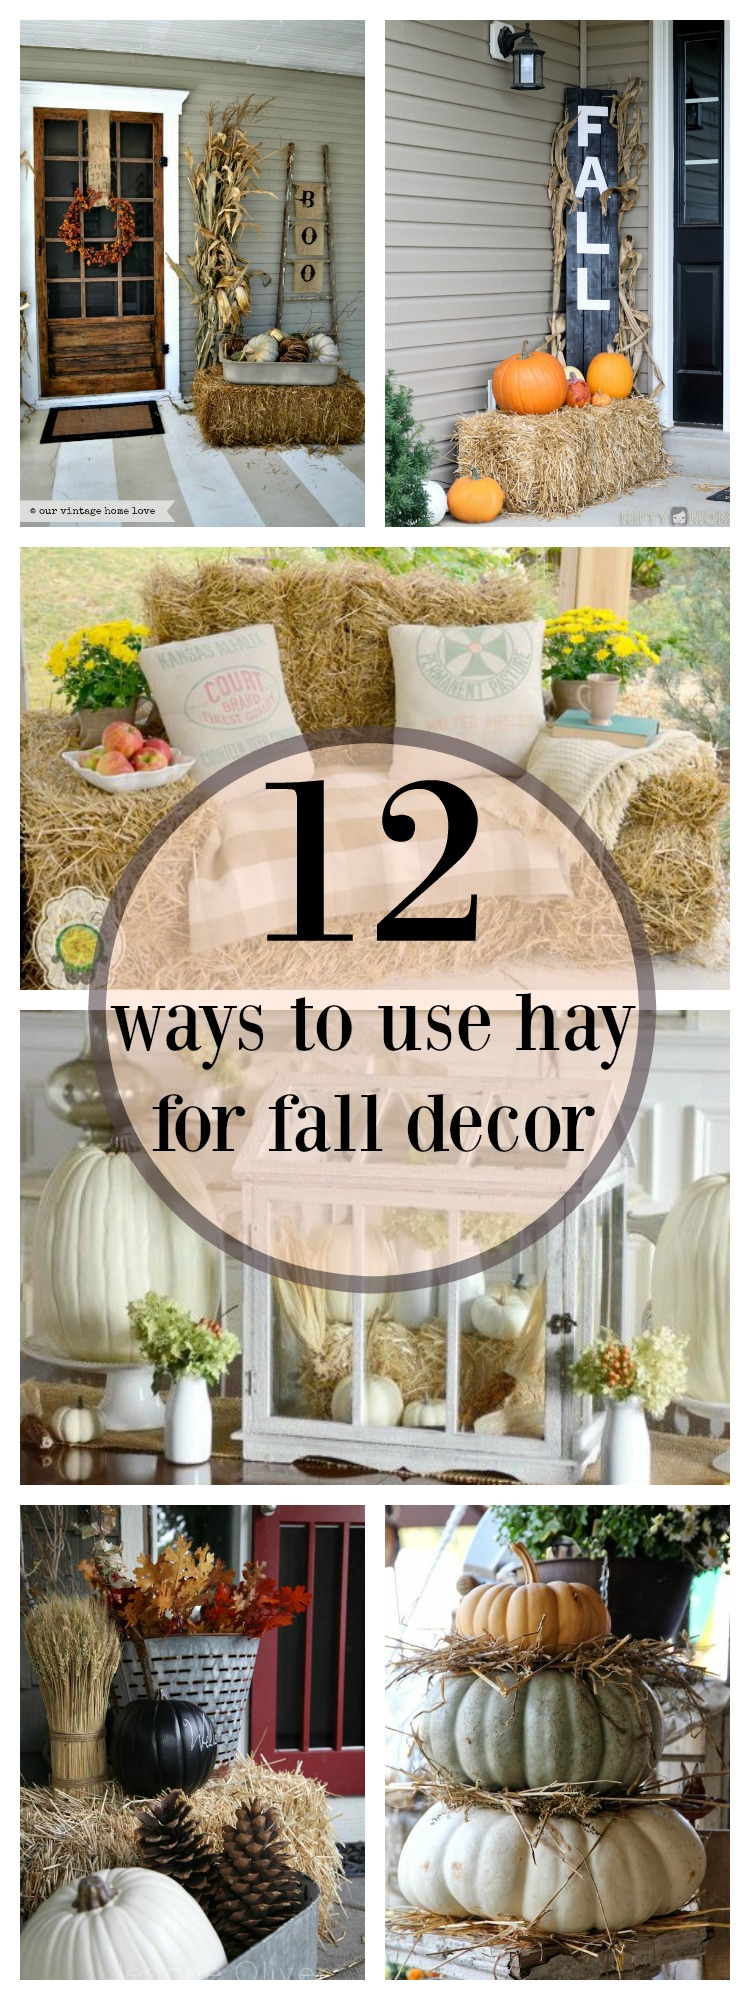 12 Ways to Use Hay in Your Fall Decor This Year!